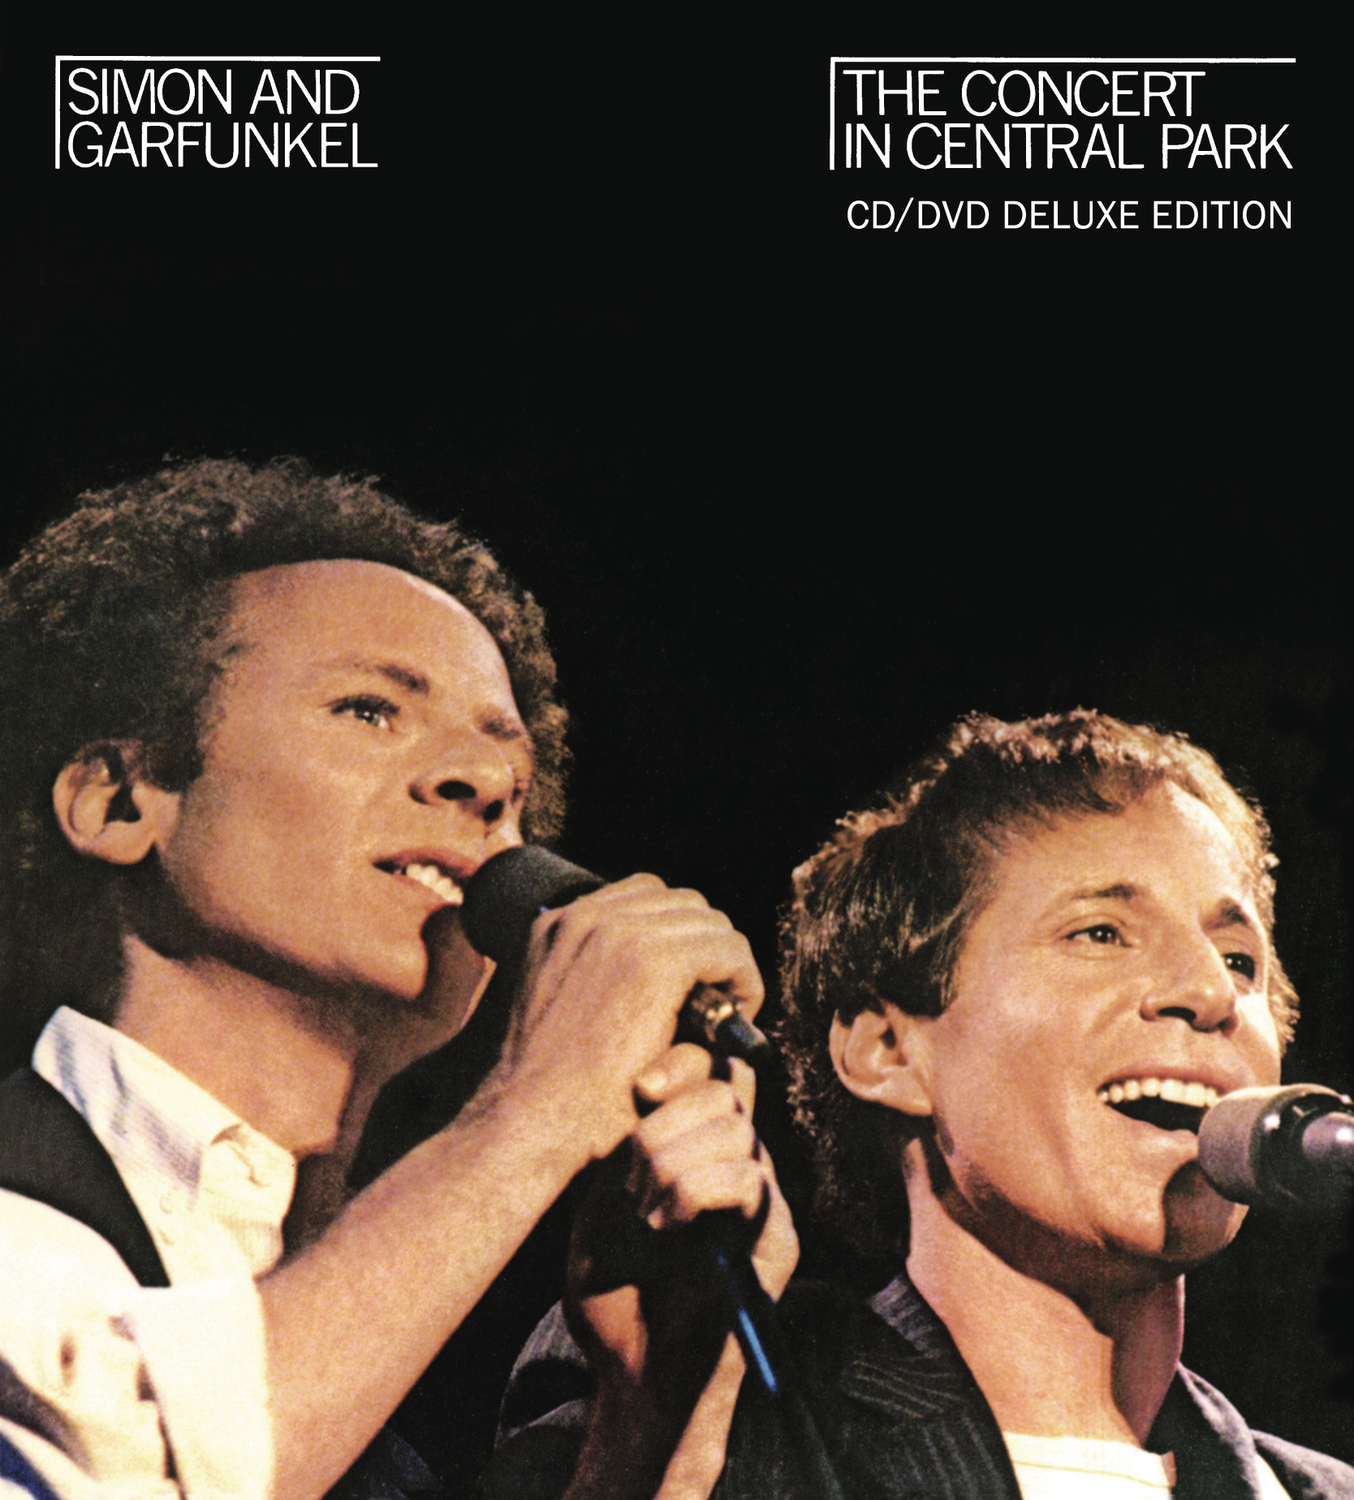 The Concert in Central Park (Deluxe Edition)